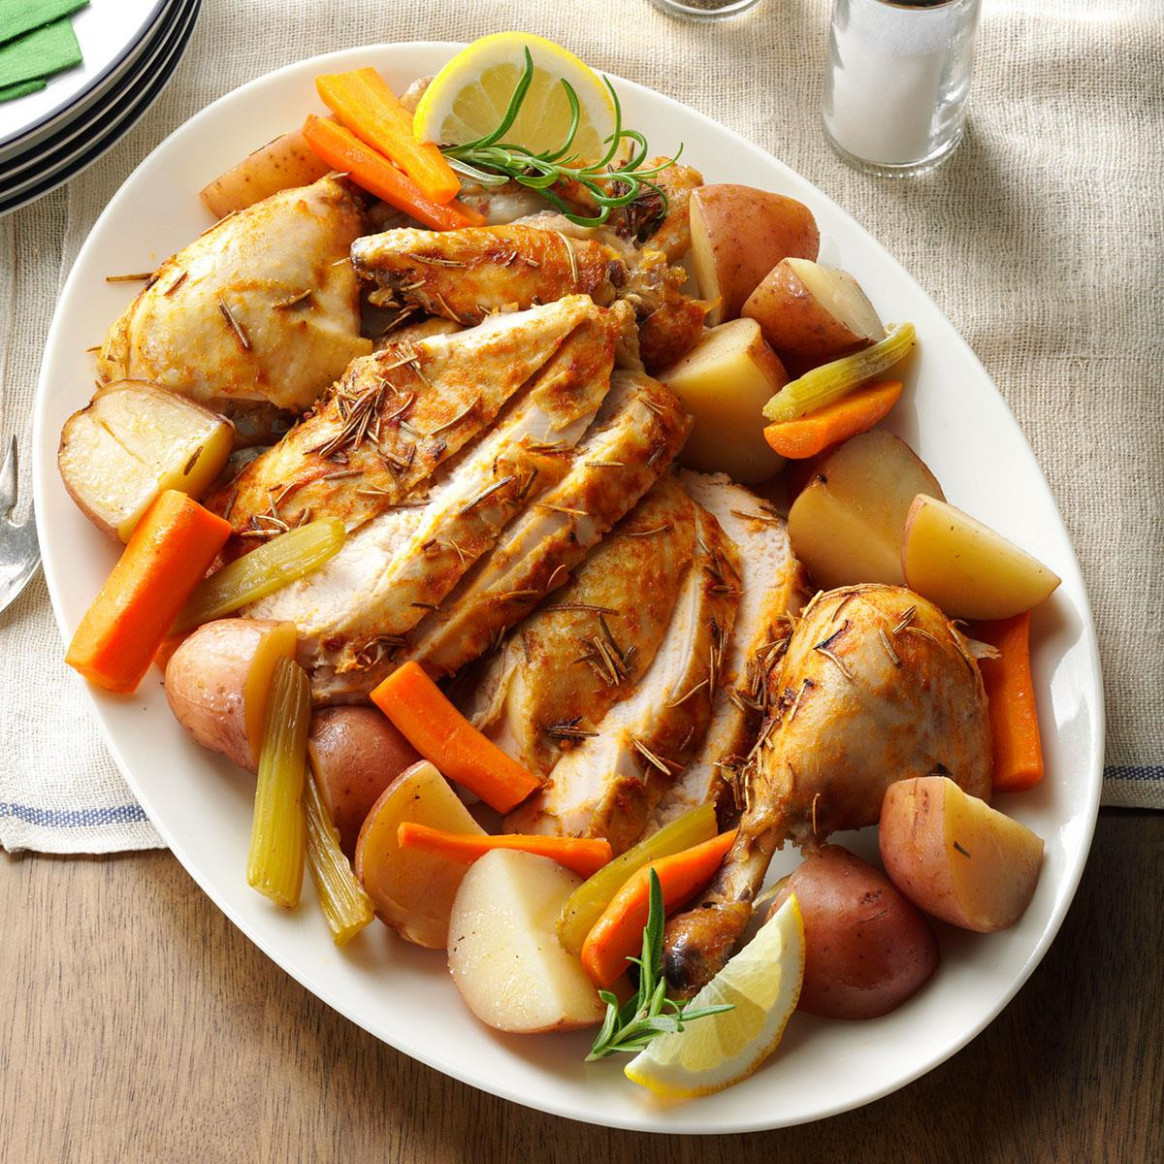 Slow-Roasted Chicken with Vegetables Recipe | Taste of Home - chicken recipes vegetables